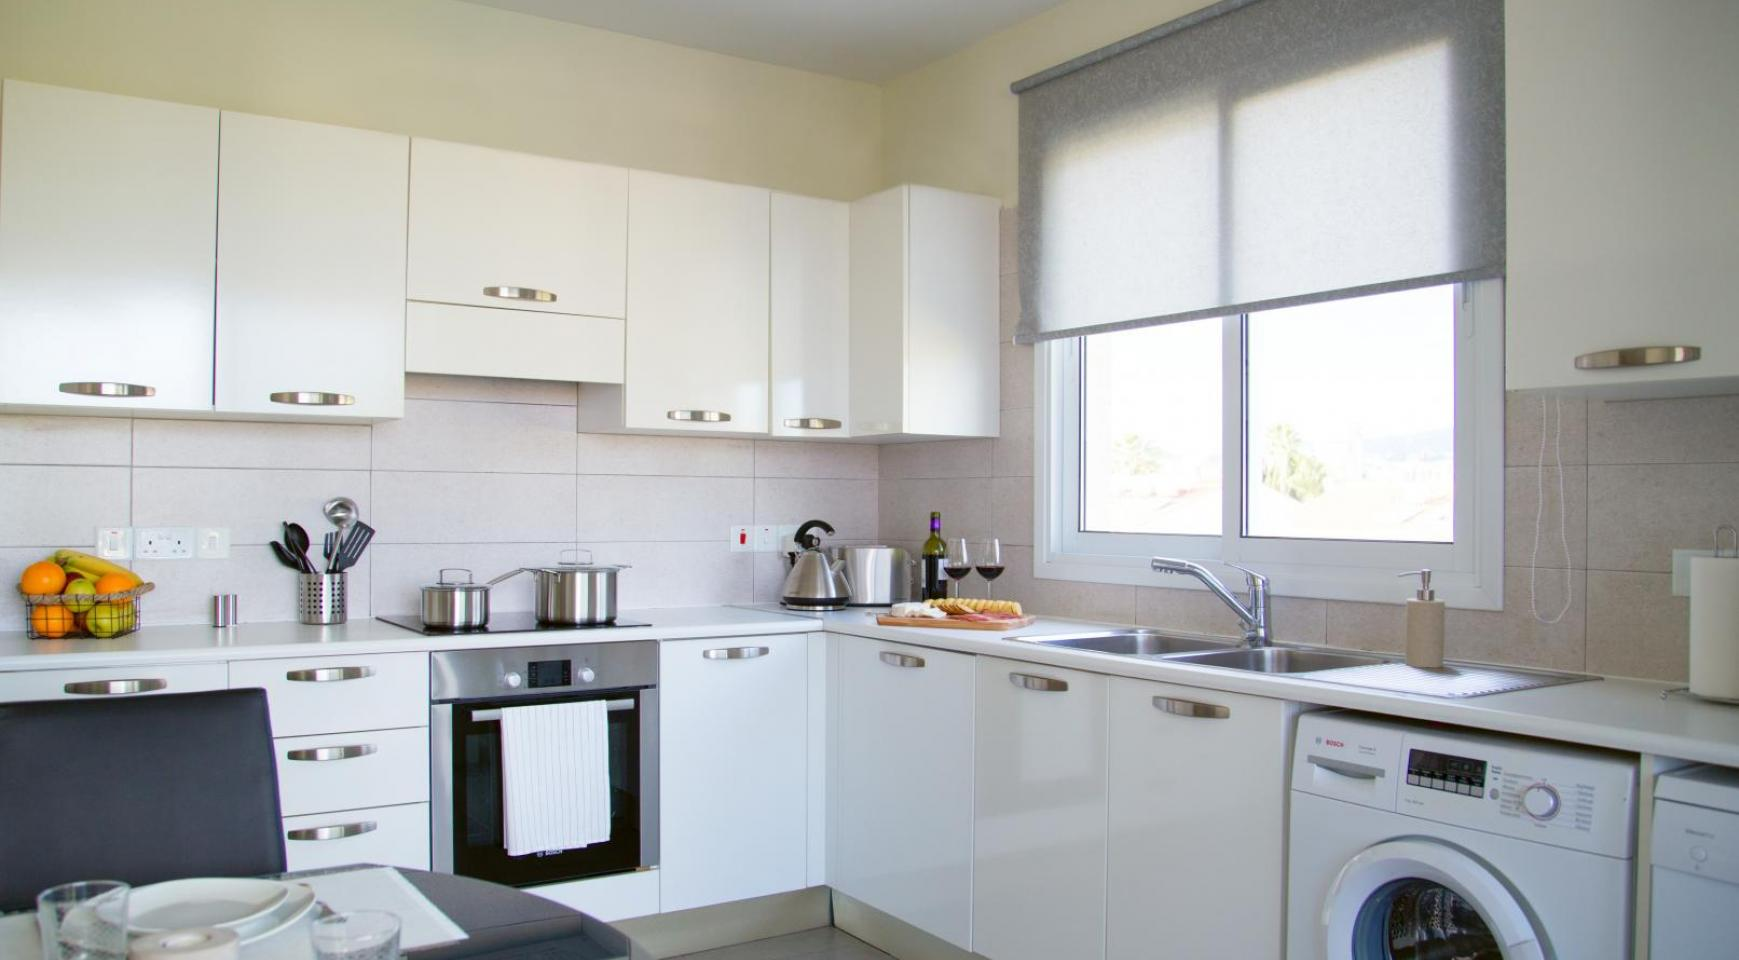 Luxury 2 Bedroom Apartment in the Tourist Area - 15